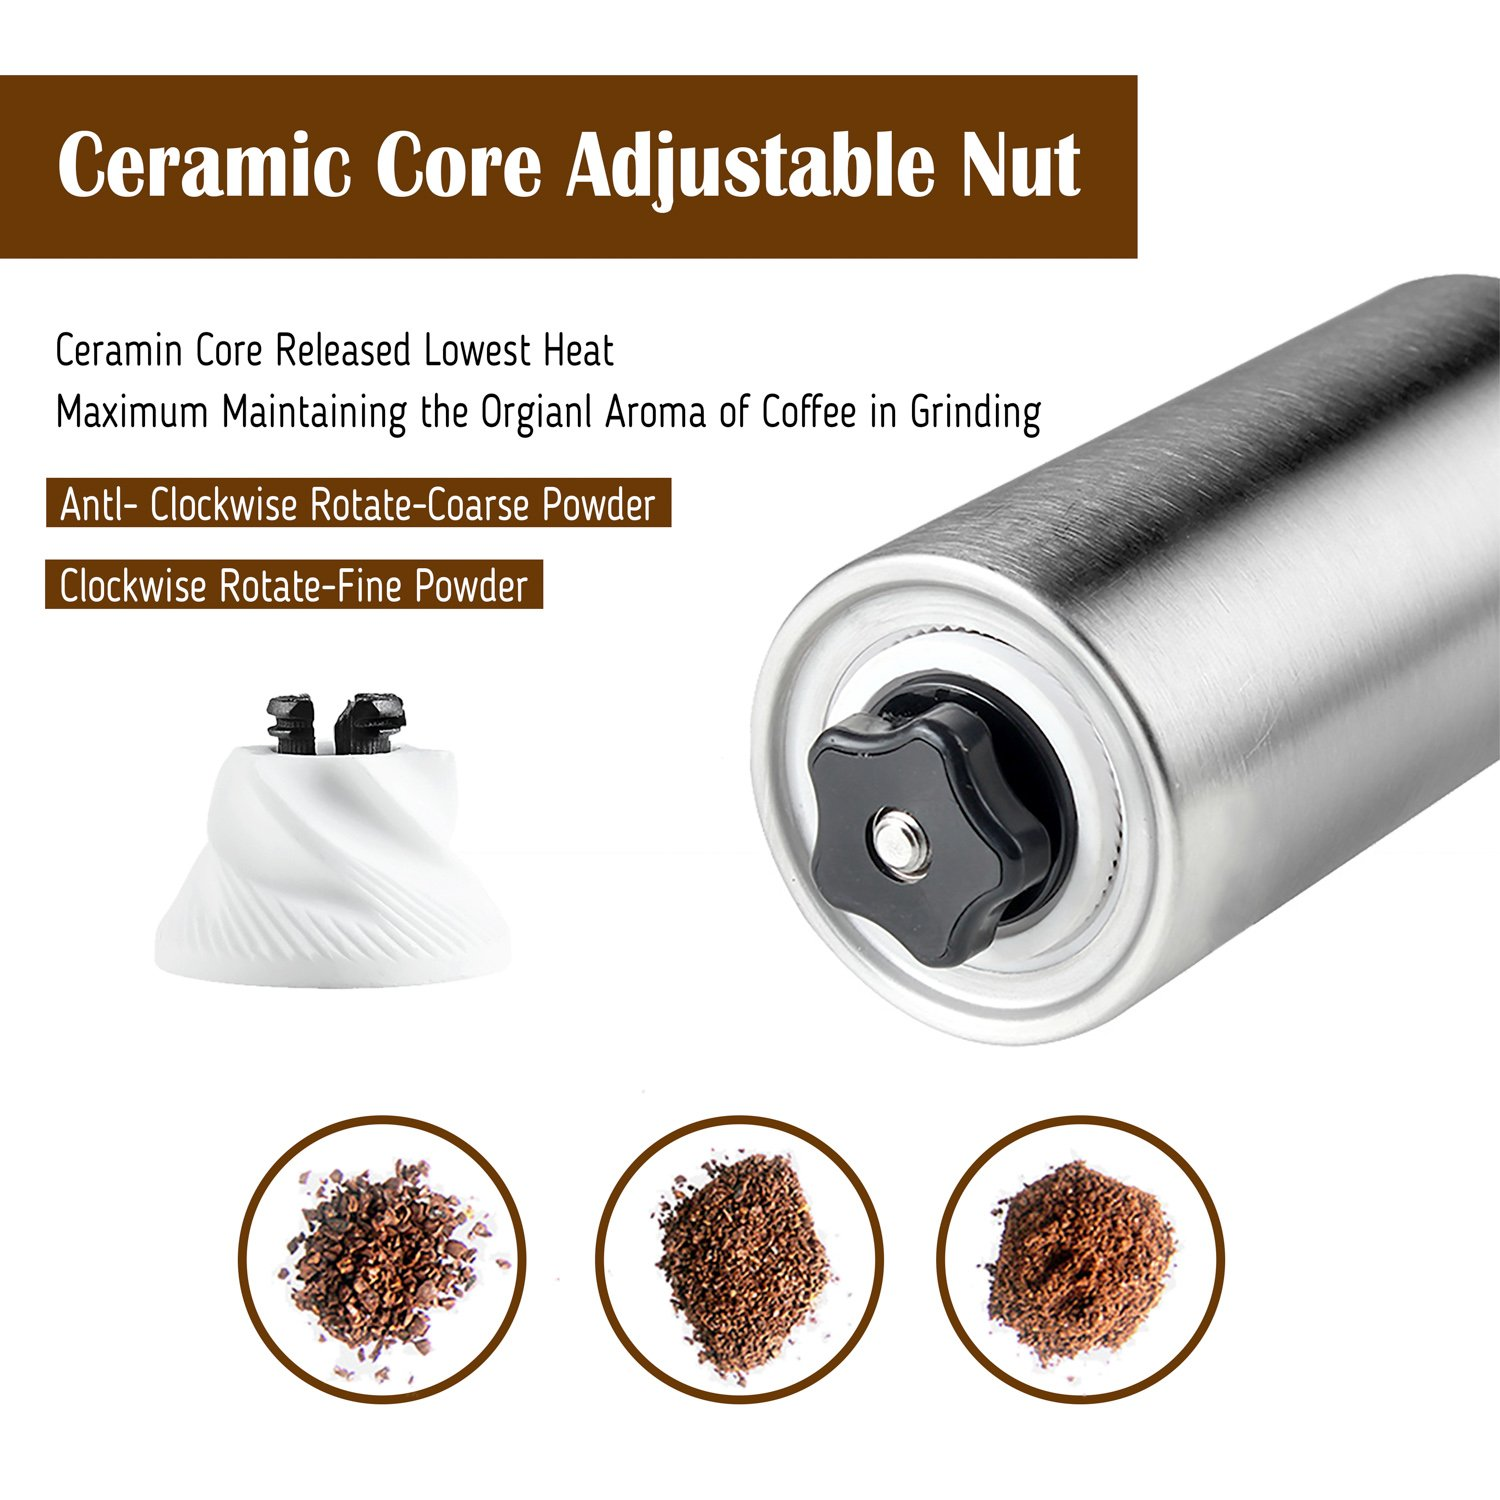 Coffee Grinder, Aessdcan Manual Coffee Mill, Mini Portable Home Kitchen Travel Stainless Steel Coffee Bean Grinder with Adjustable Ceramic Core by Aessdcan (Image #3)